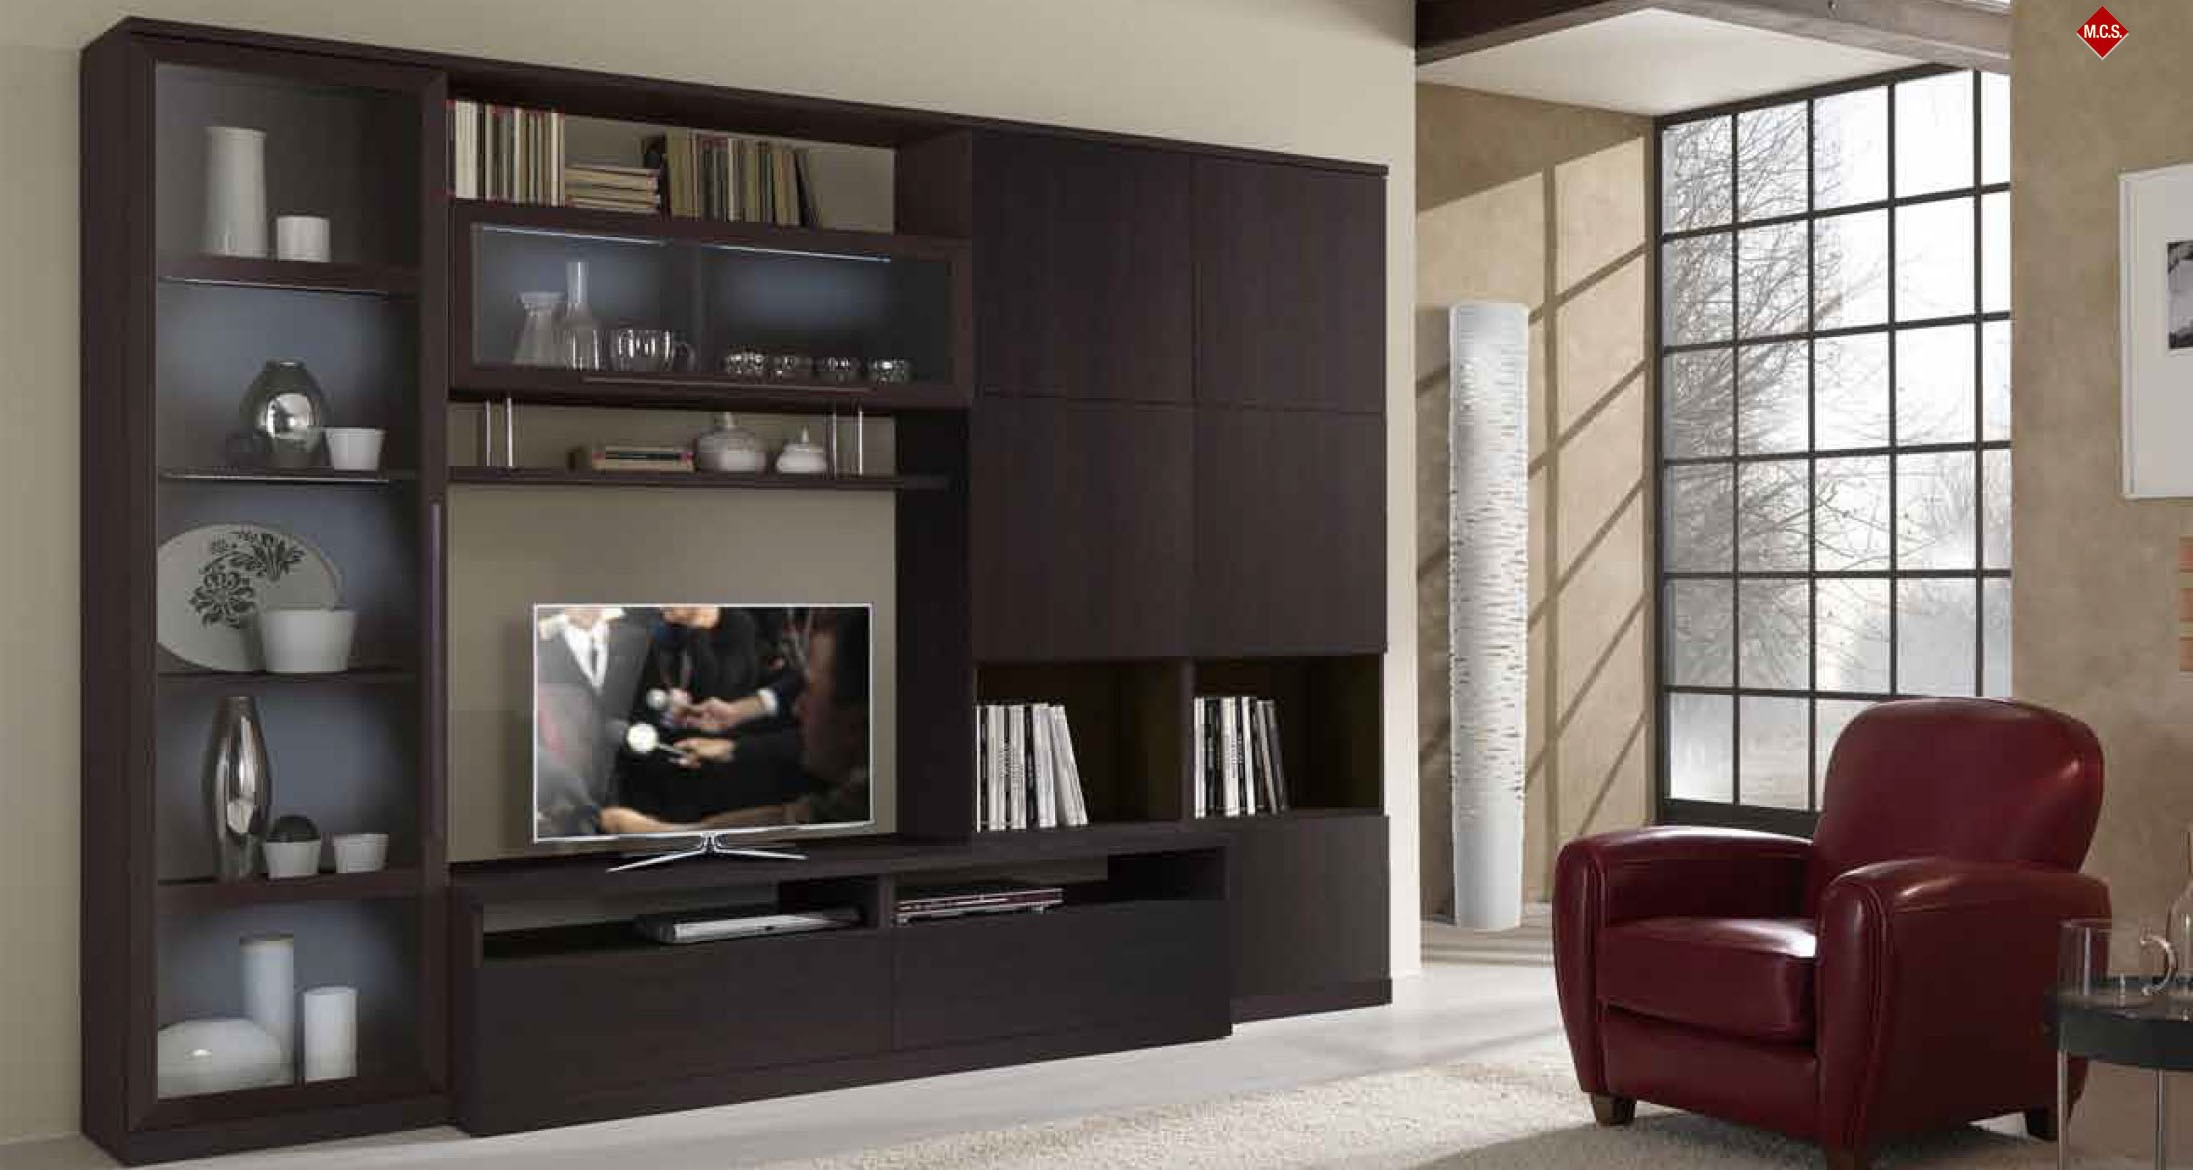 Modern TV Unit Design Ideas For Bedroom Living Room With Pictures   Bedroom  showcase designs20 Modern TV Unit Design Ideas For Bedroom Living Room With  . Living Room Furniture Design Pictures. Home Design Ideas